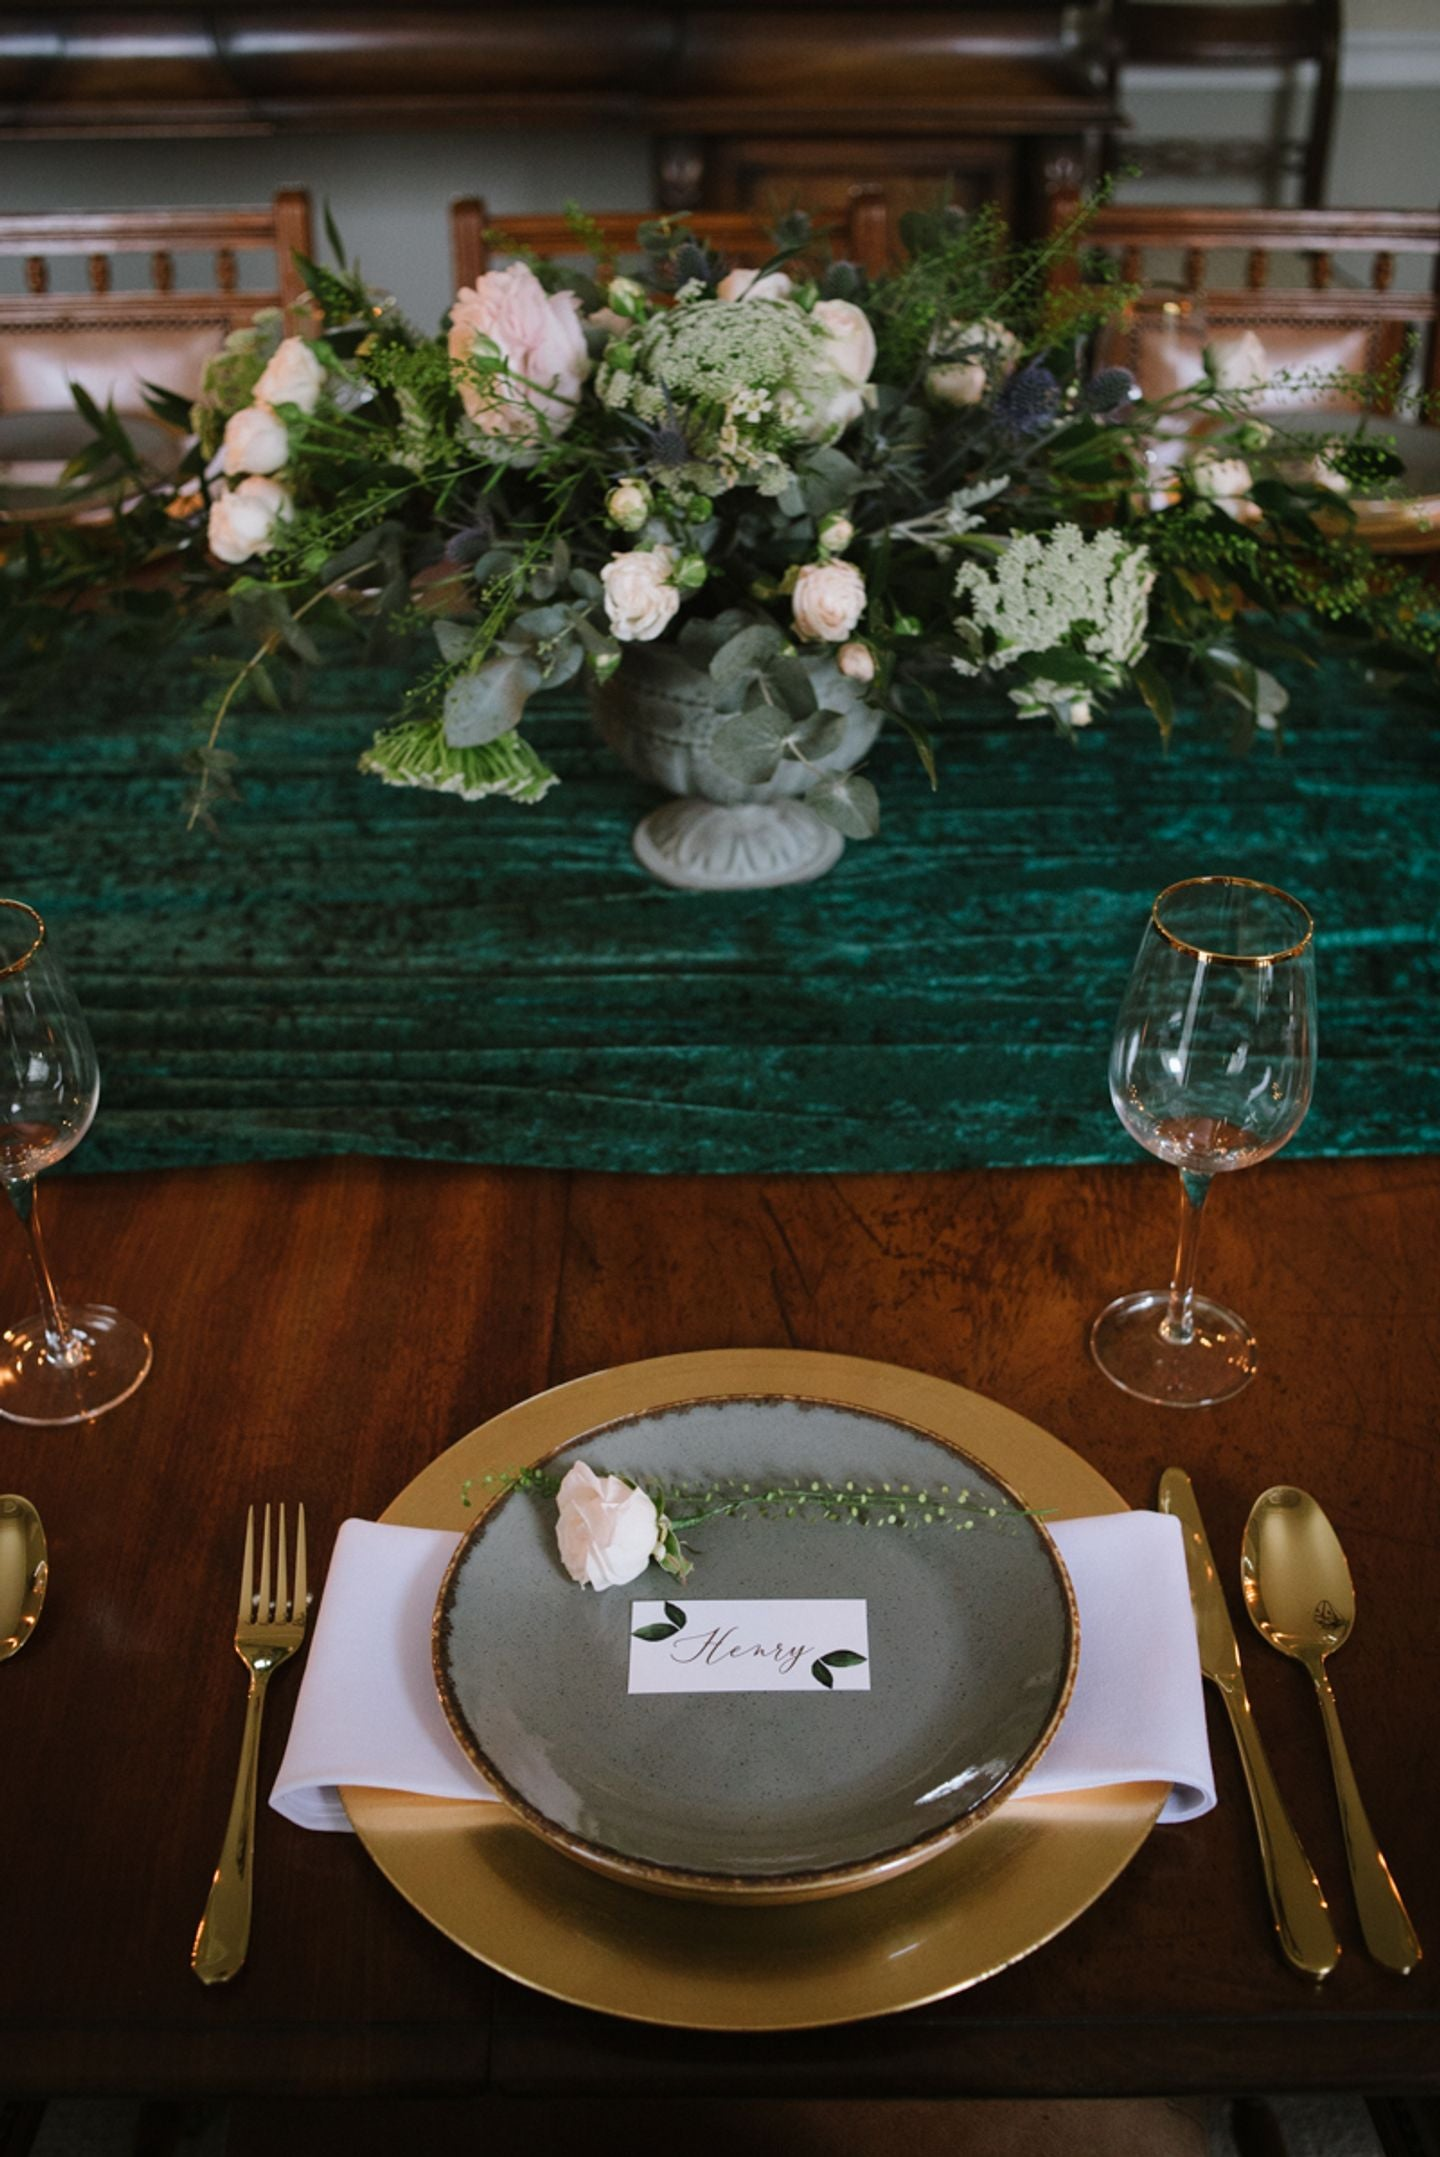 Country house table setting, rich forest green table dressing, wild flowers and hand written place cards